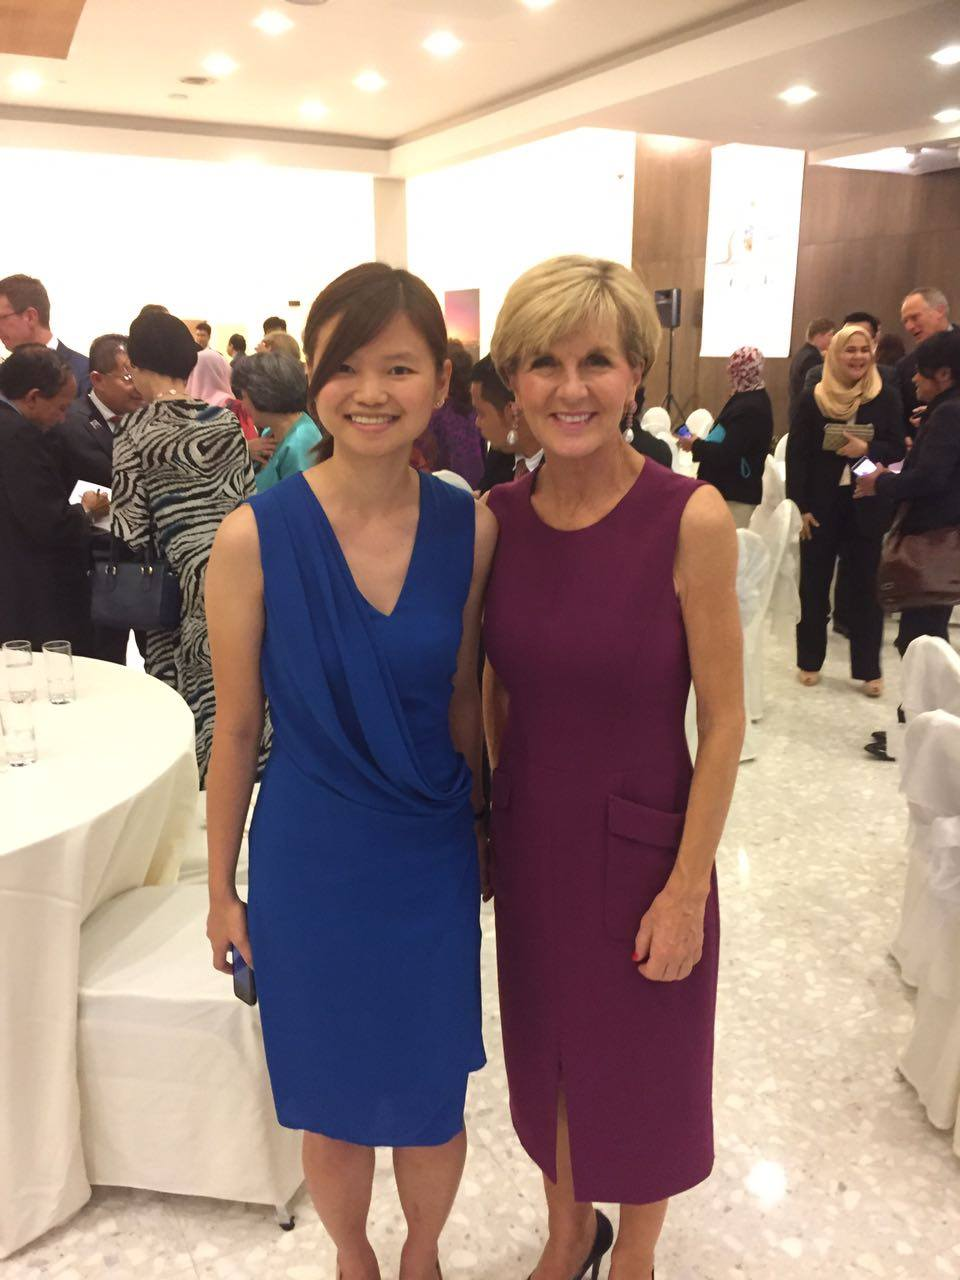 Wen Shin China with the Honourable Julie Bishop MP at the IWD dinner hosted by His Excellency Rod Smith PSM.